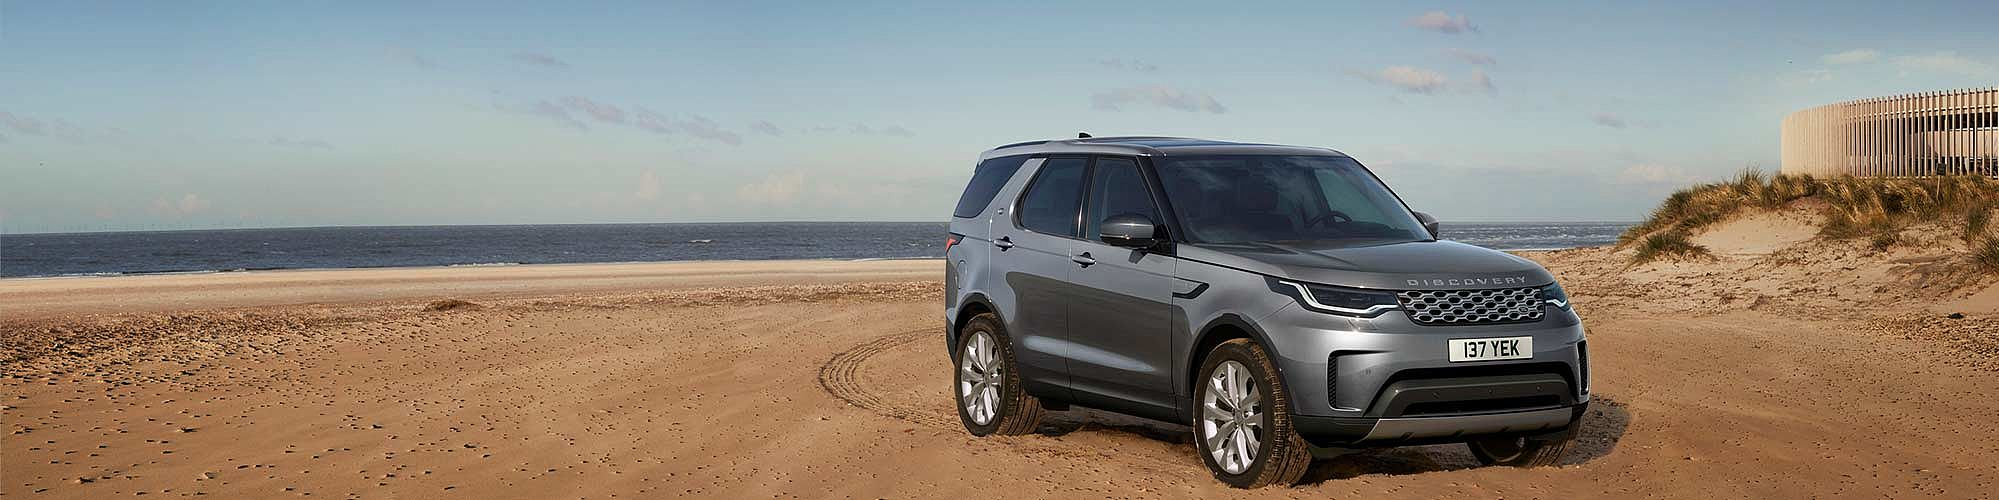 Der Land Rover Discovery